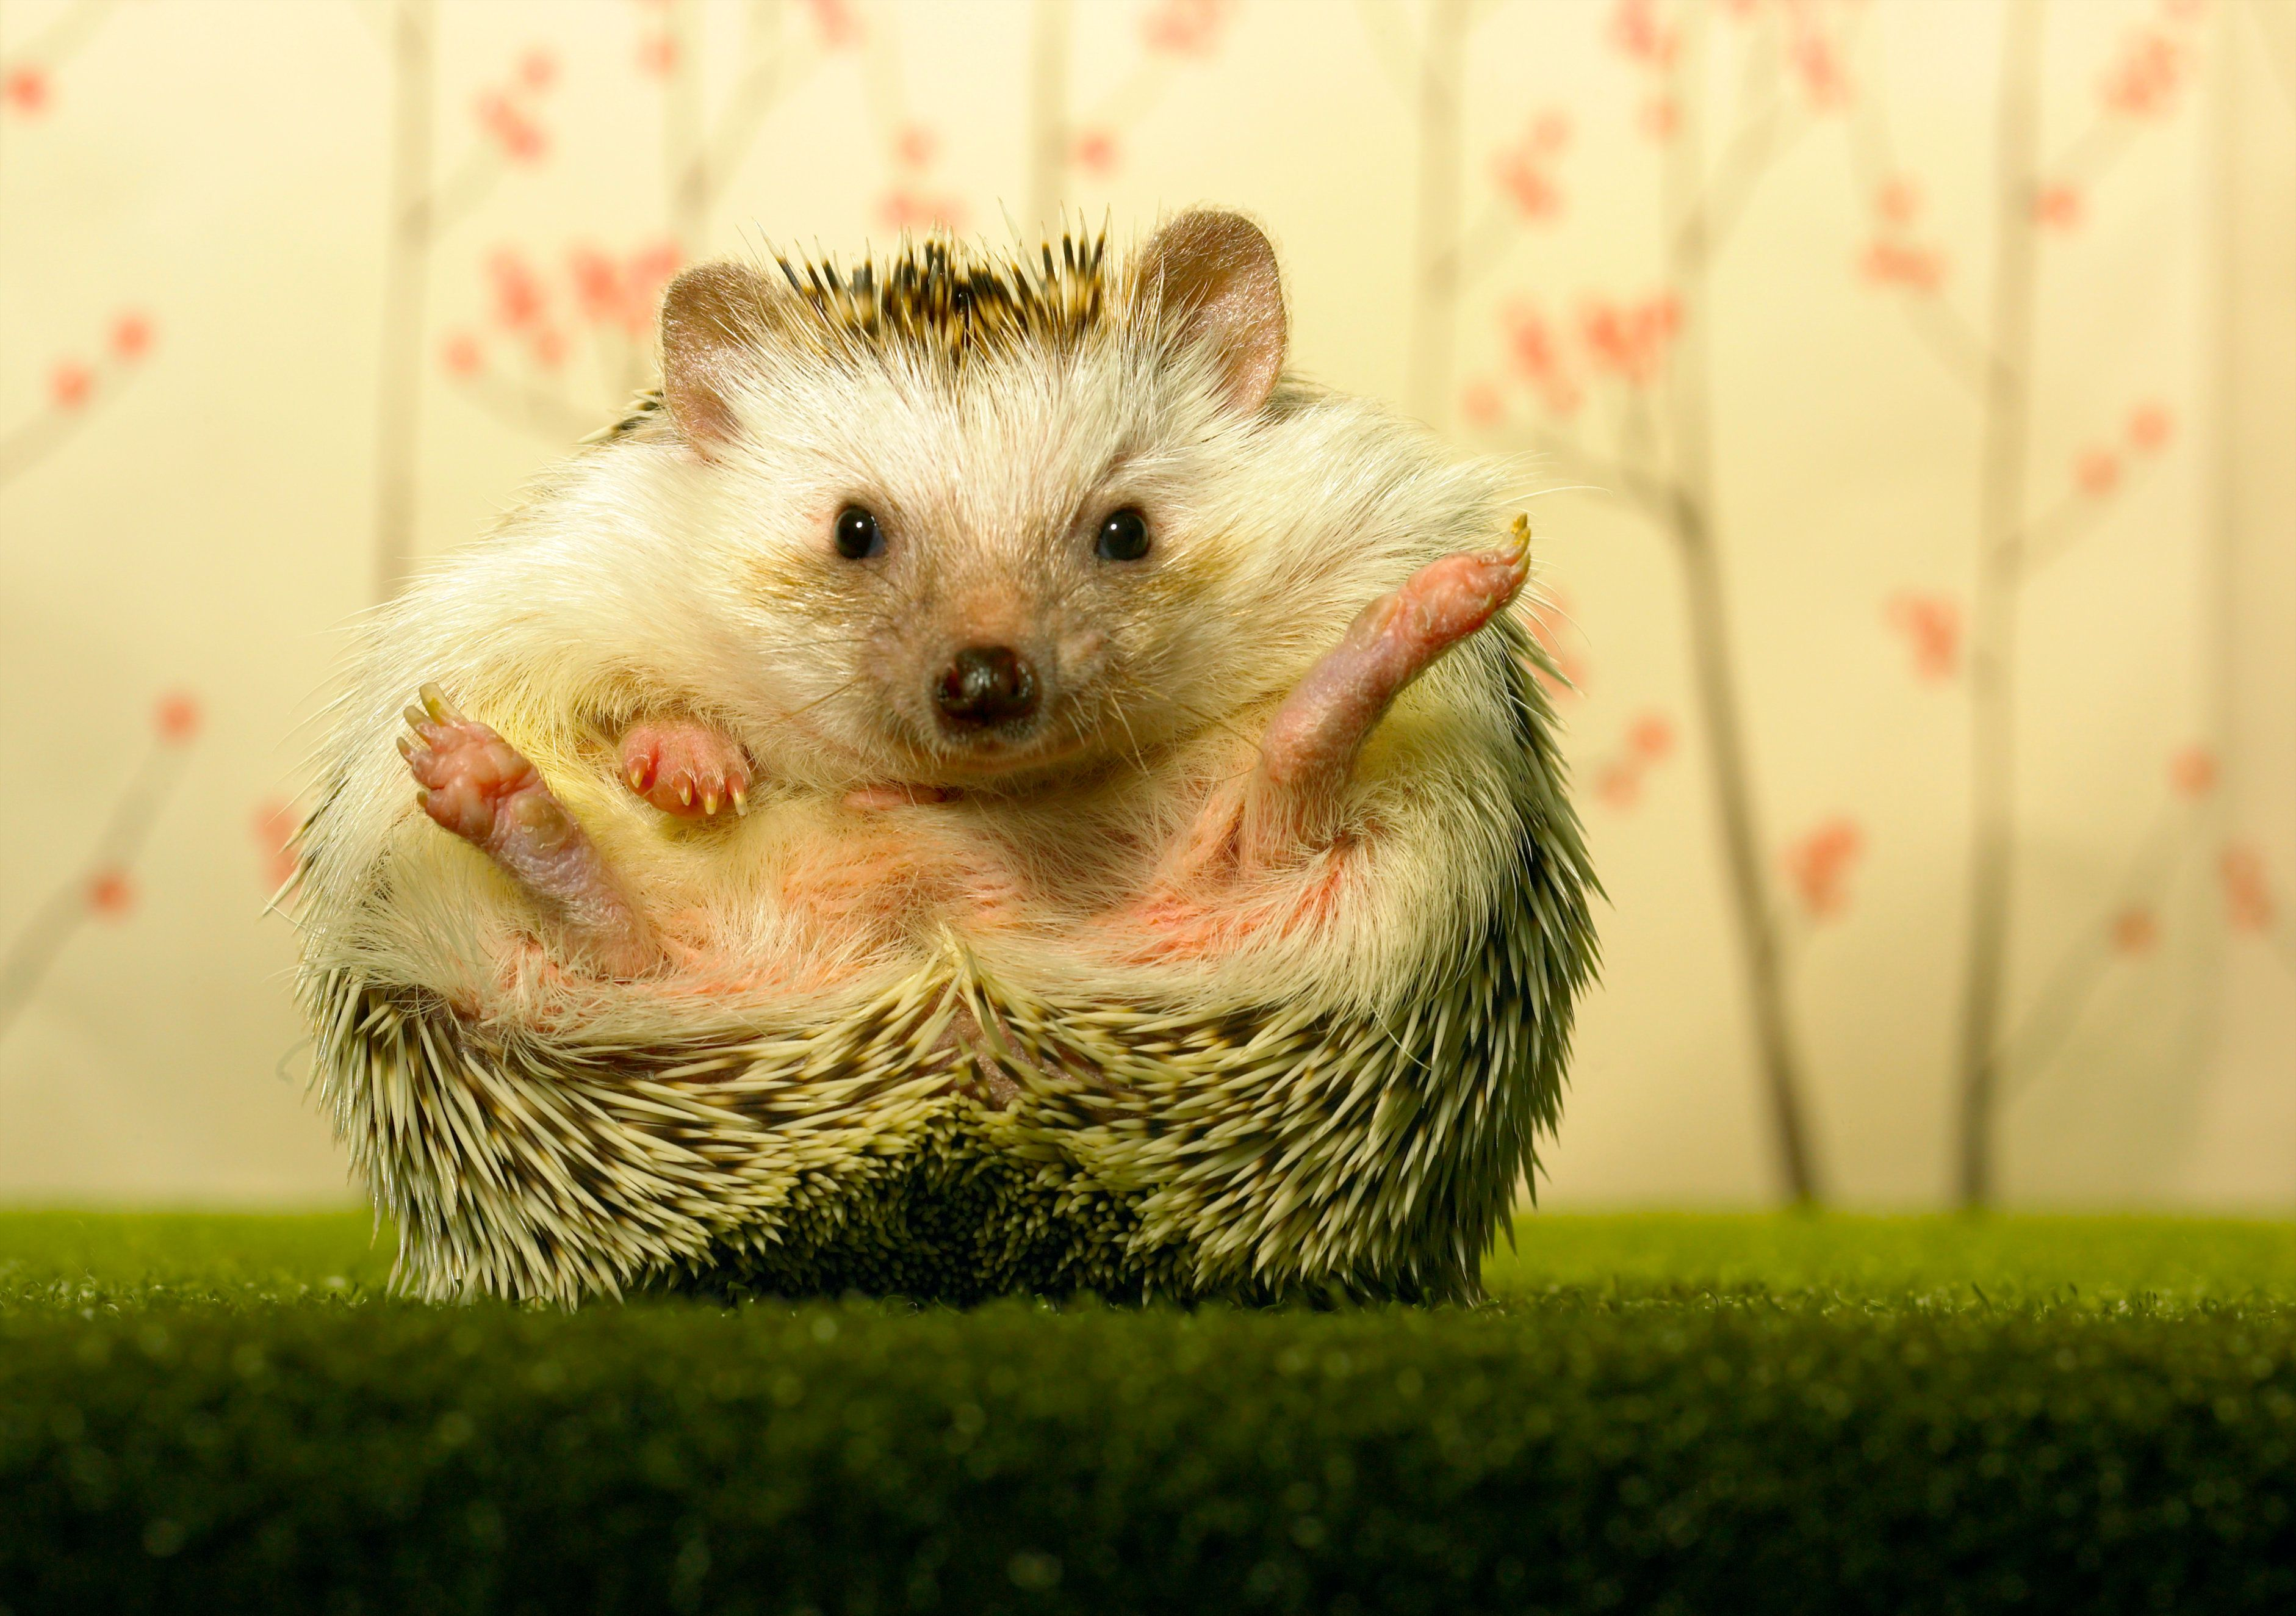 You Can Now Visit A Hedgehog Cafe In Tokyo